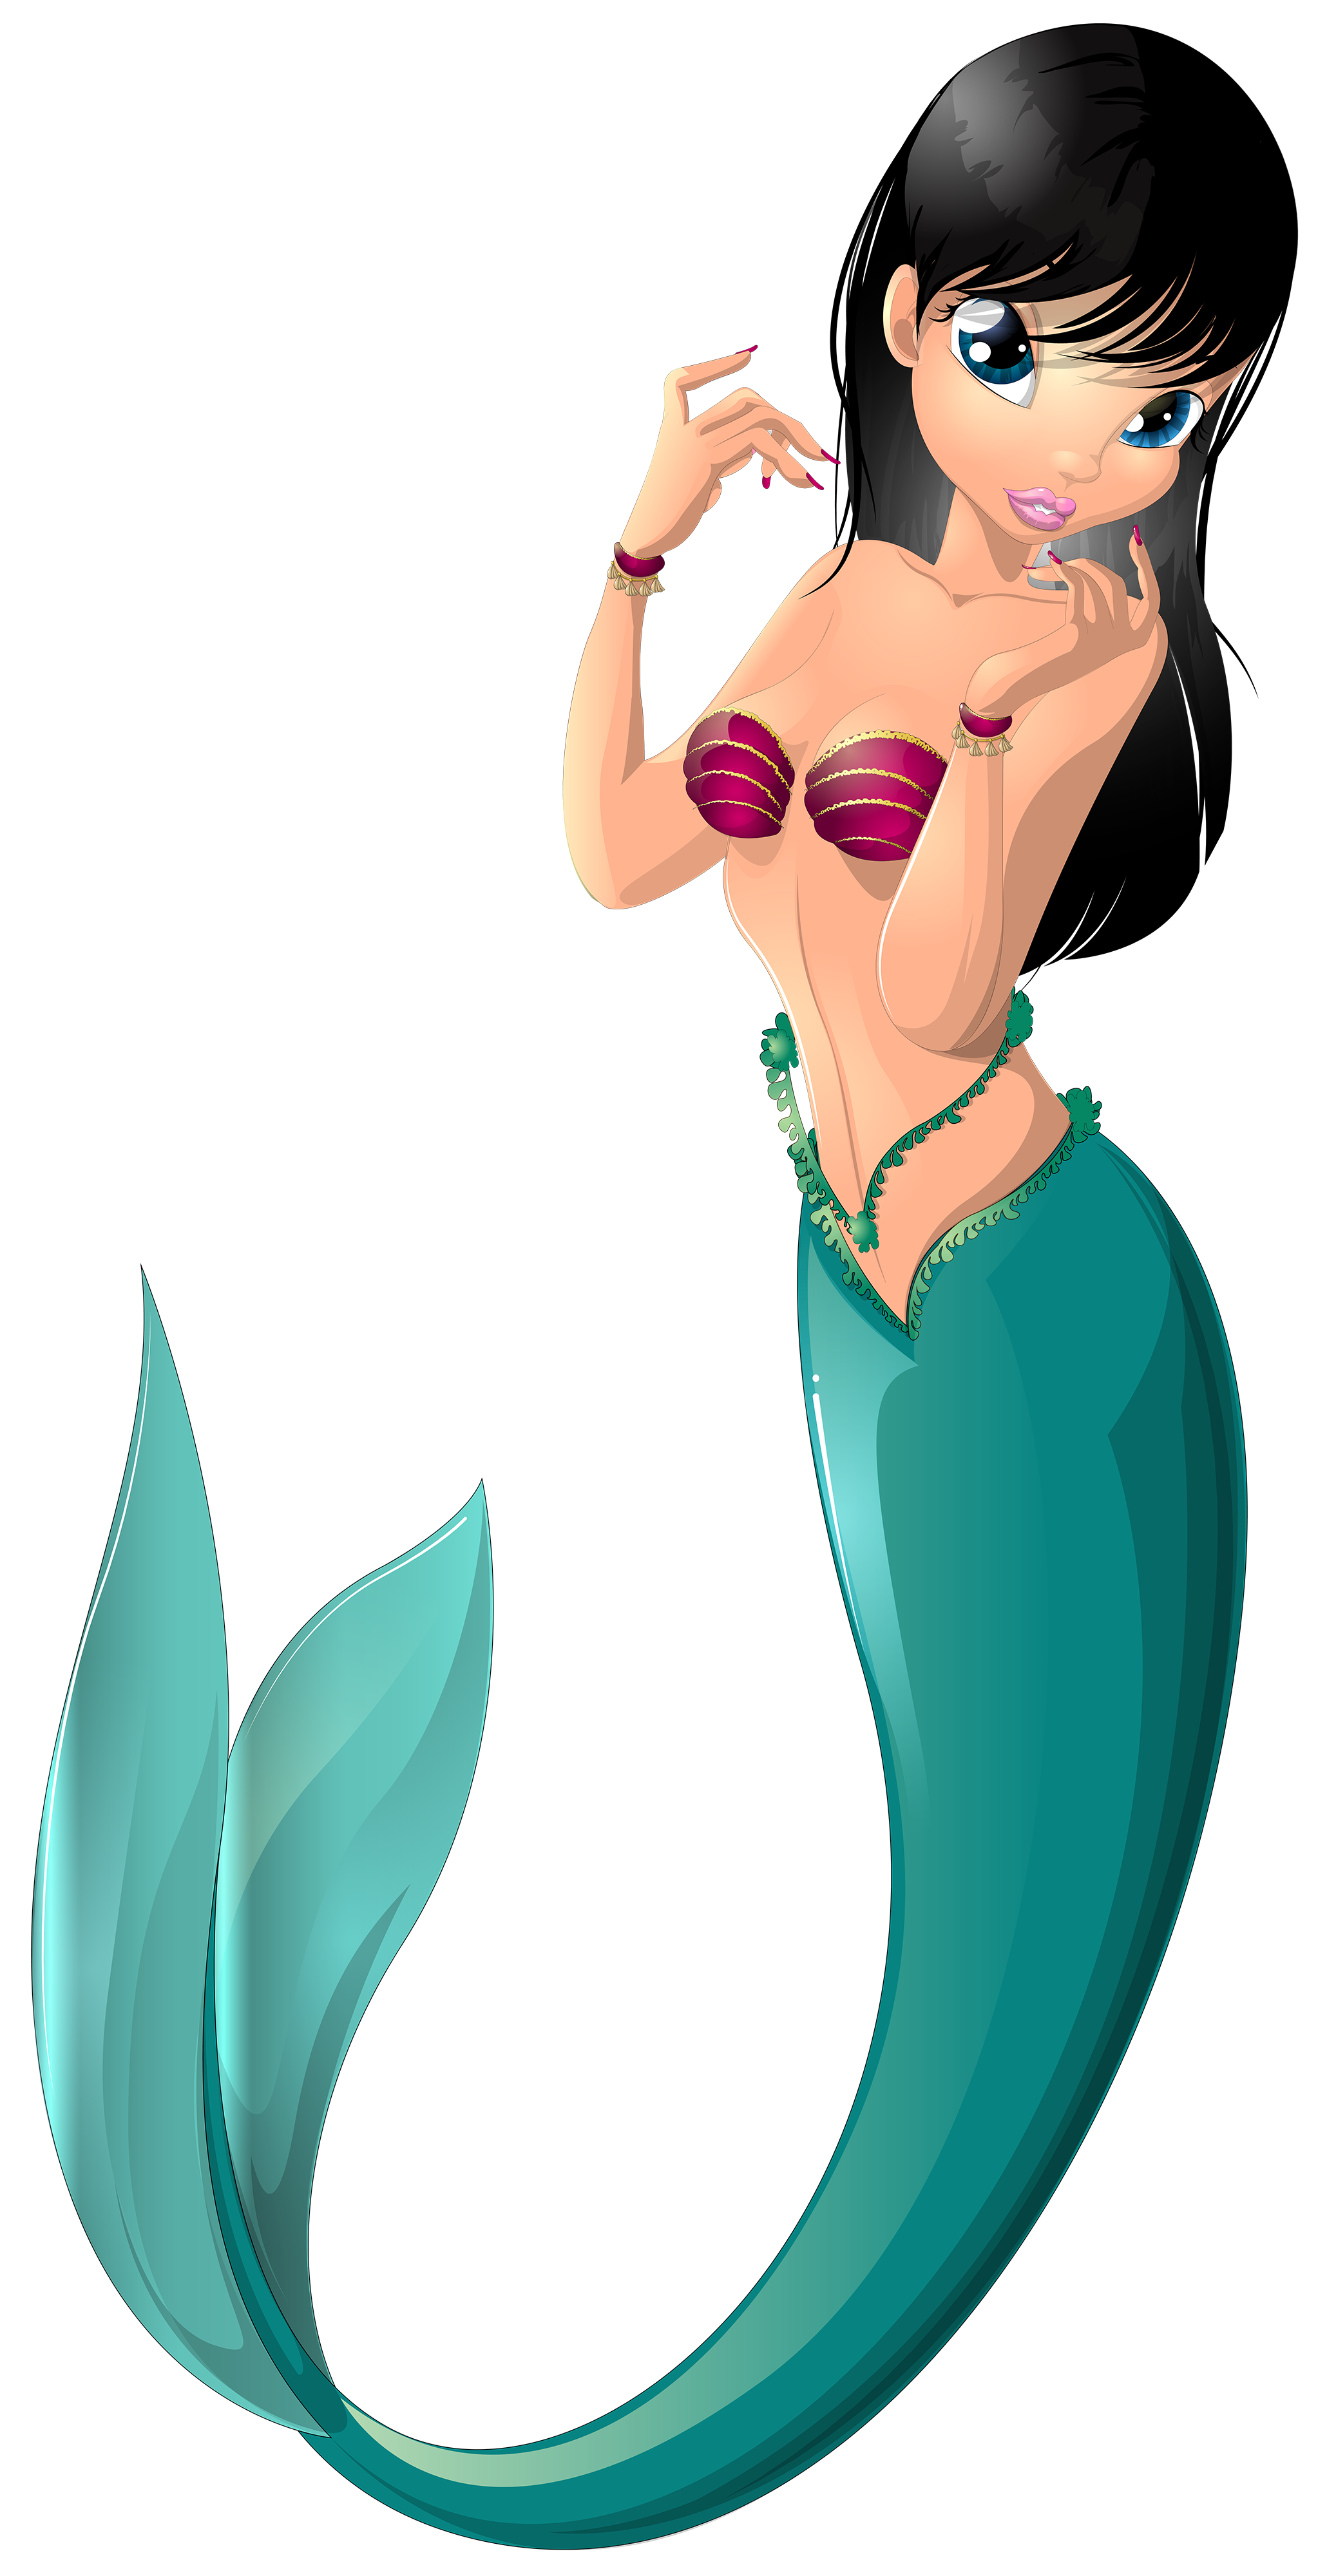 Mermaid clipart cartoon. Clip art image svg